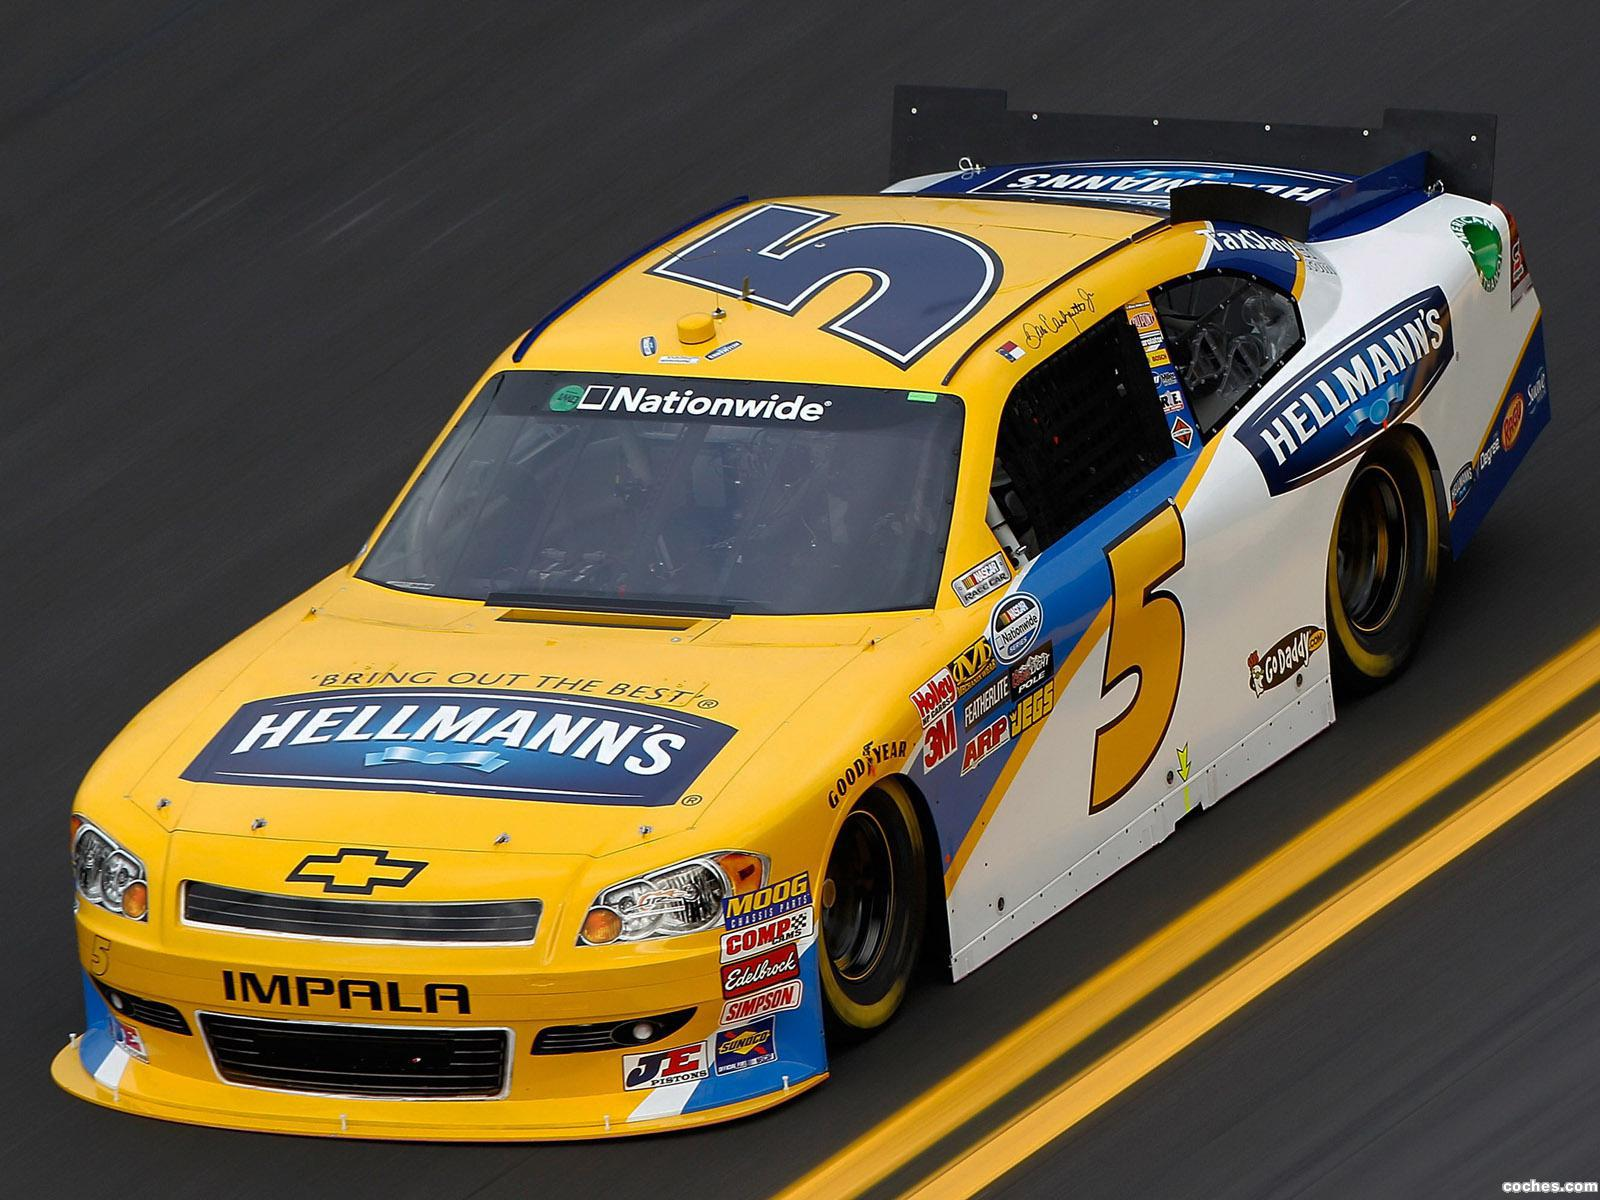 Foto 3 de Chevrolet Impala NASCAR Nationwide Series Race Car 2011